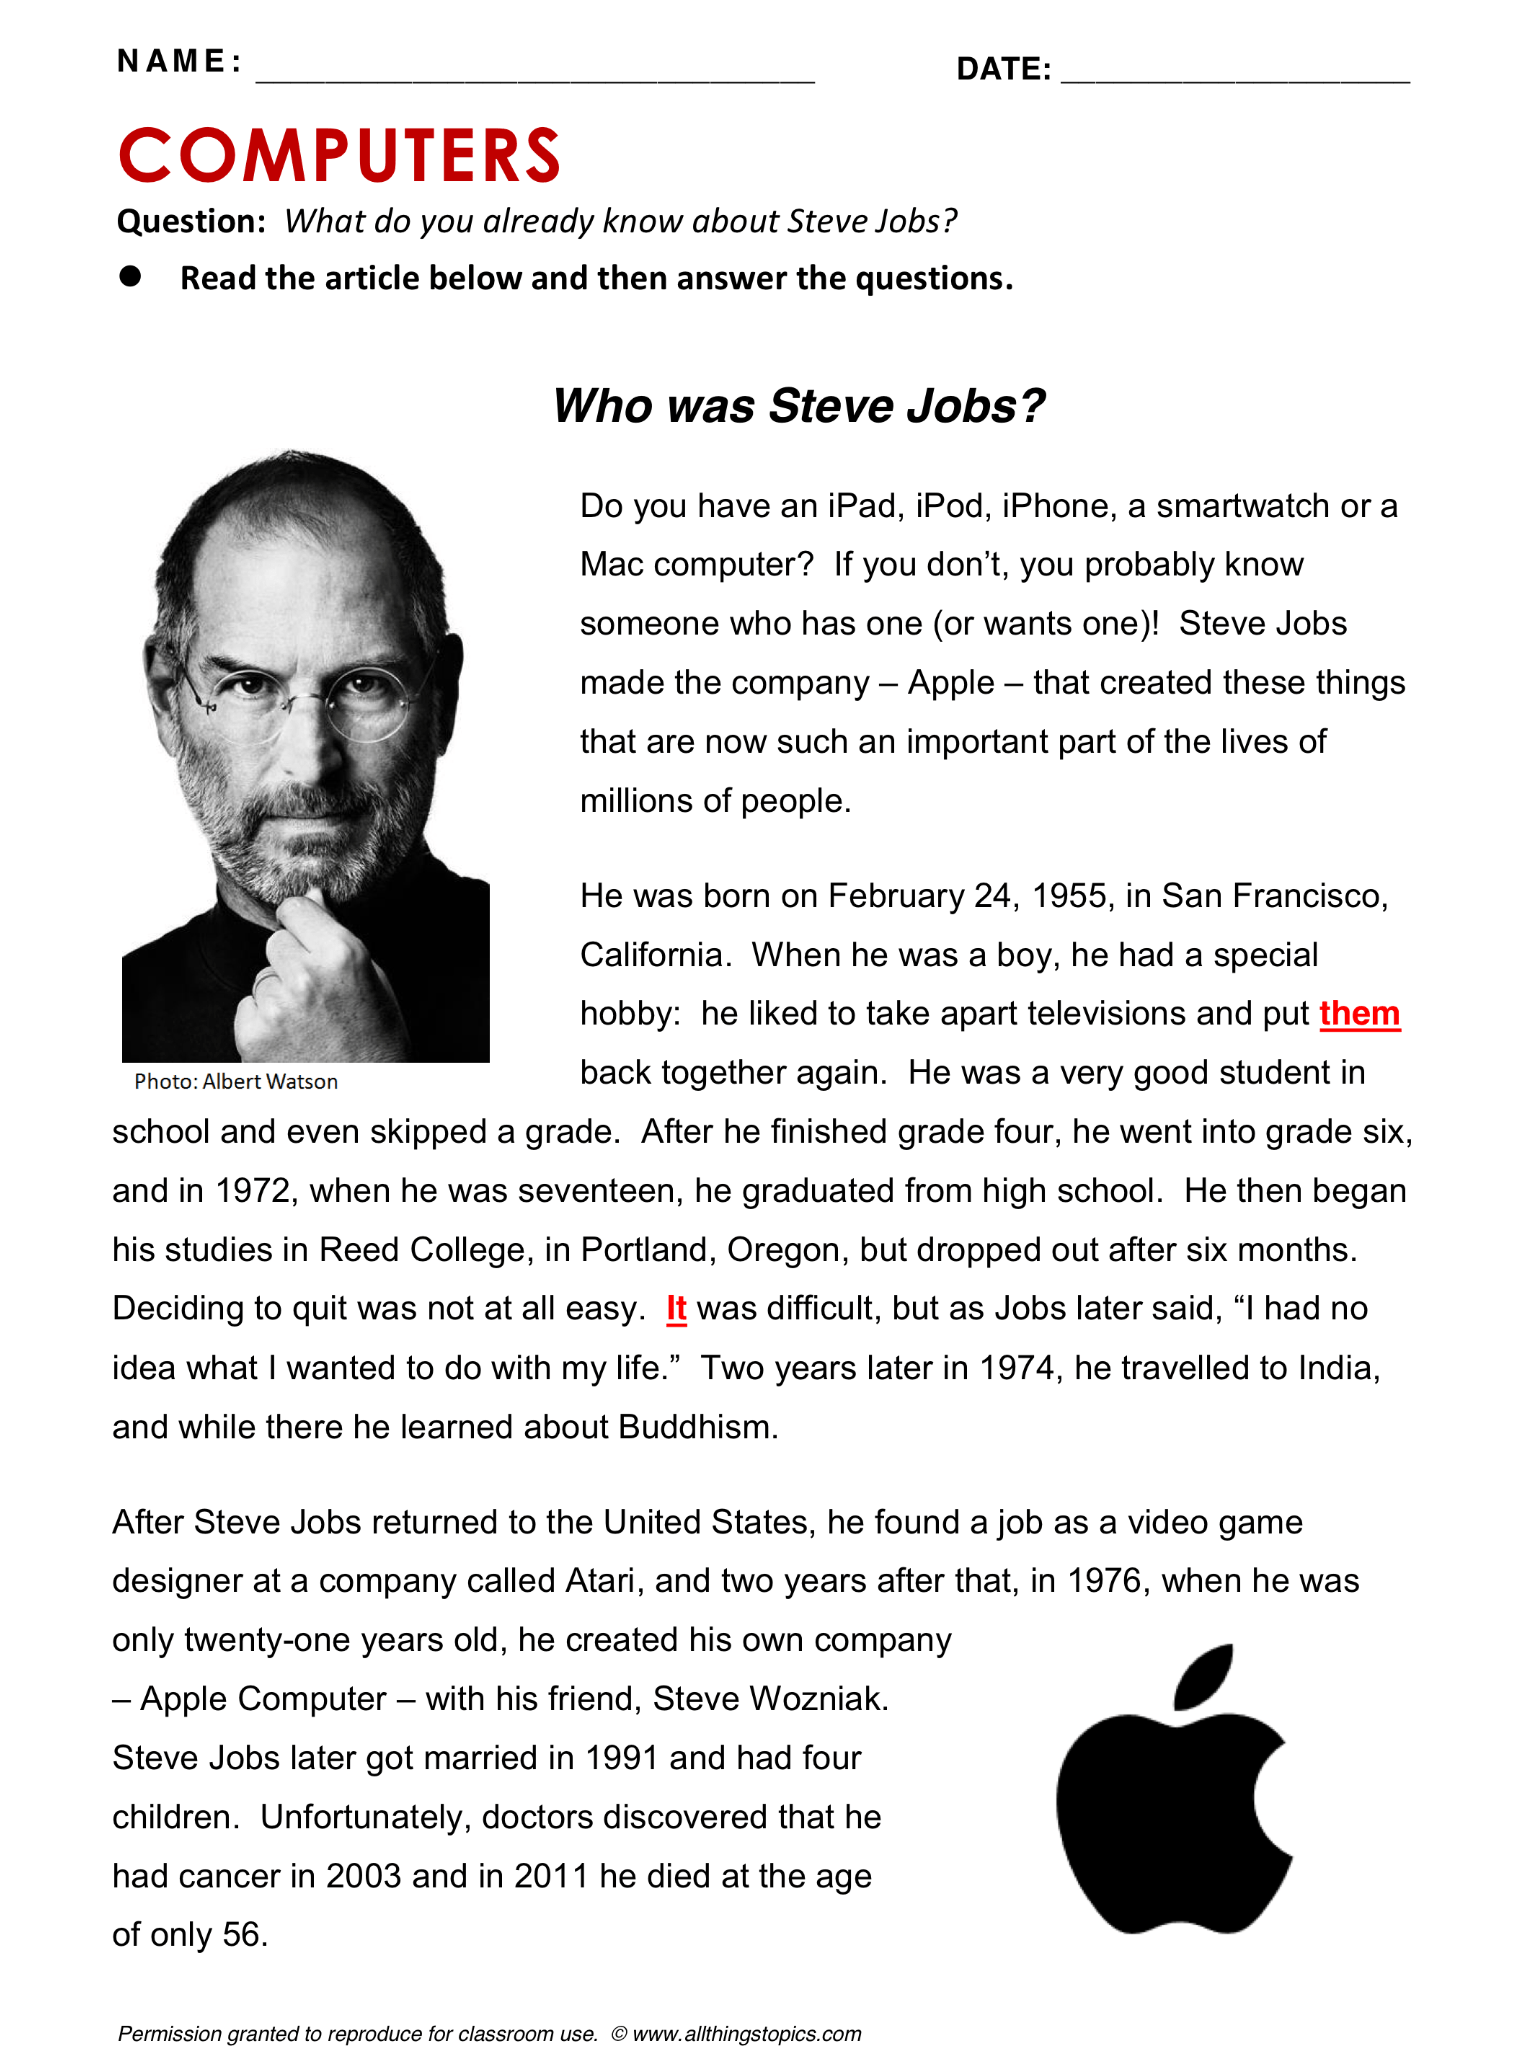 Steve Jobs Computers And Internet English Learning